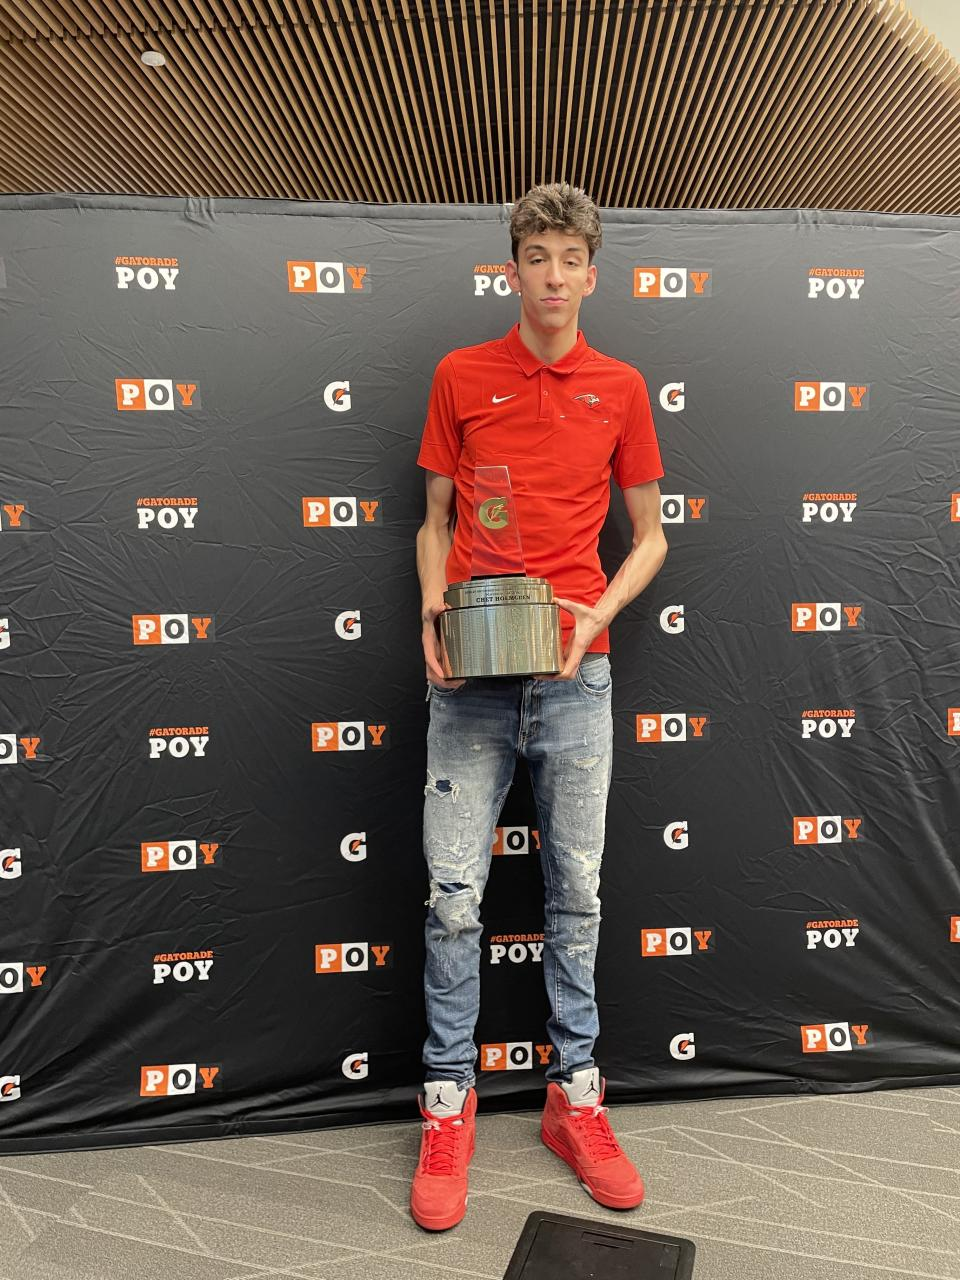 The No. 1 player in high school basketball, Chet Holmgren, was named the Gatorade National Player of the Year. (Photo courtesy of Gatorade)